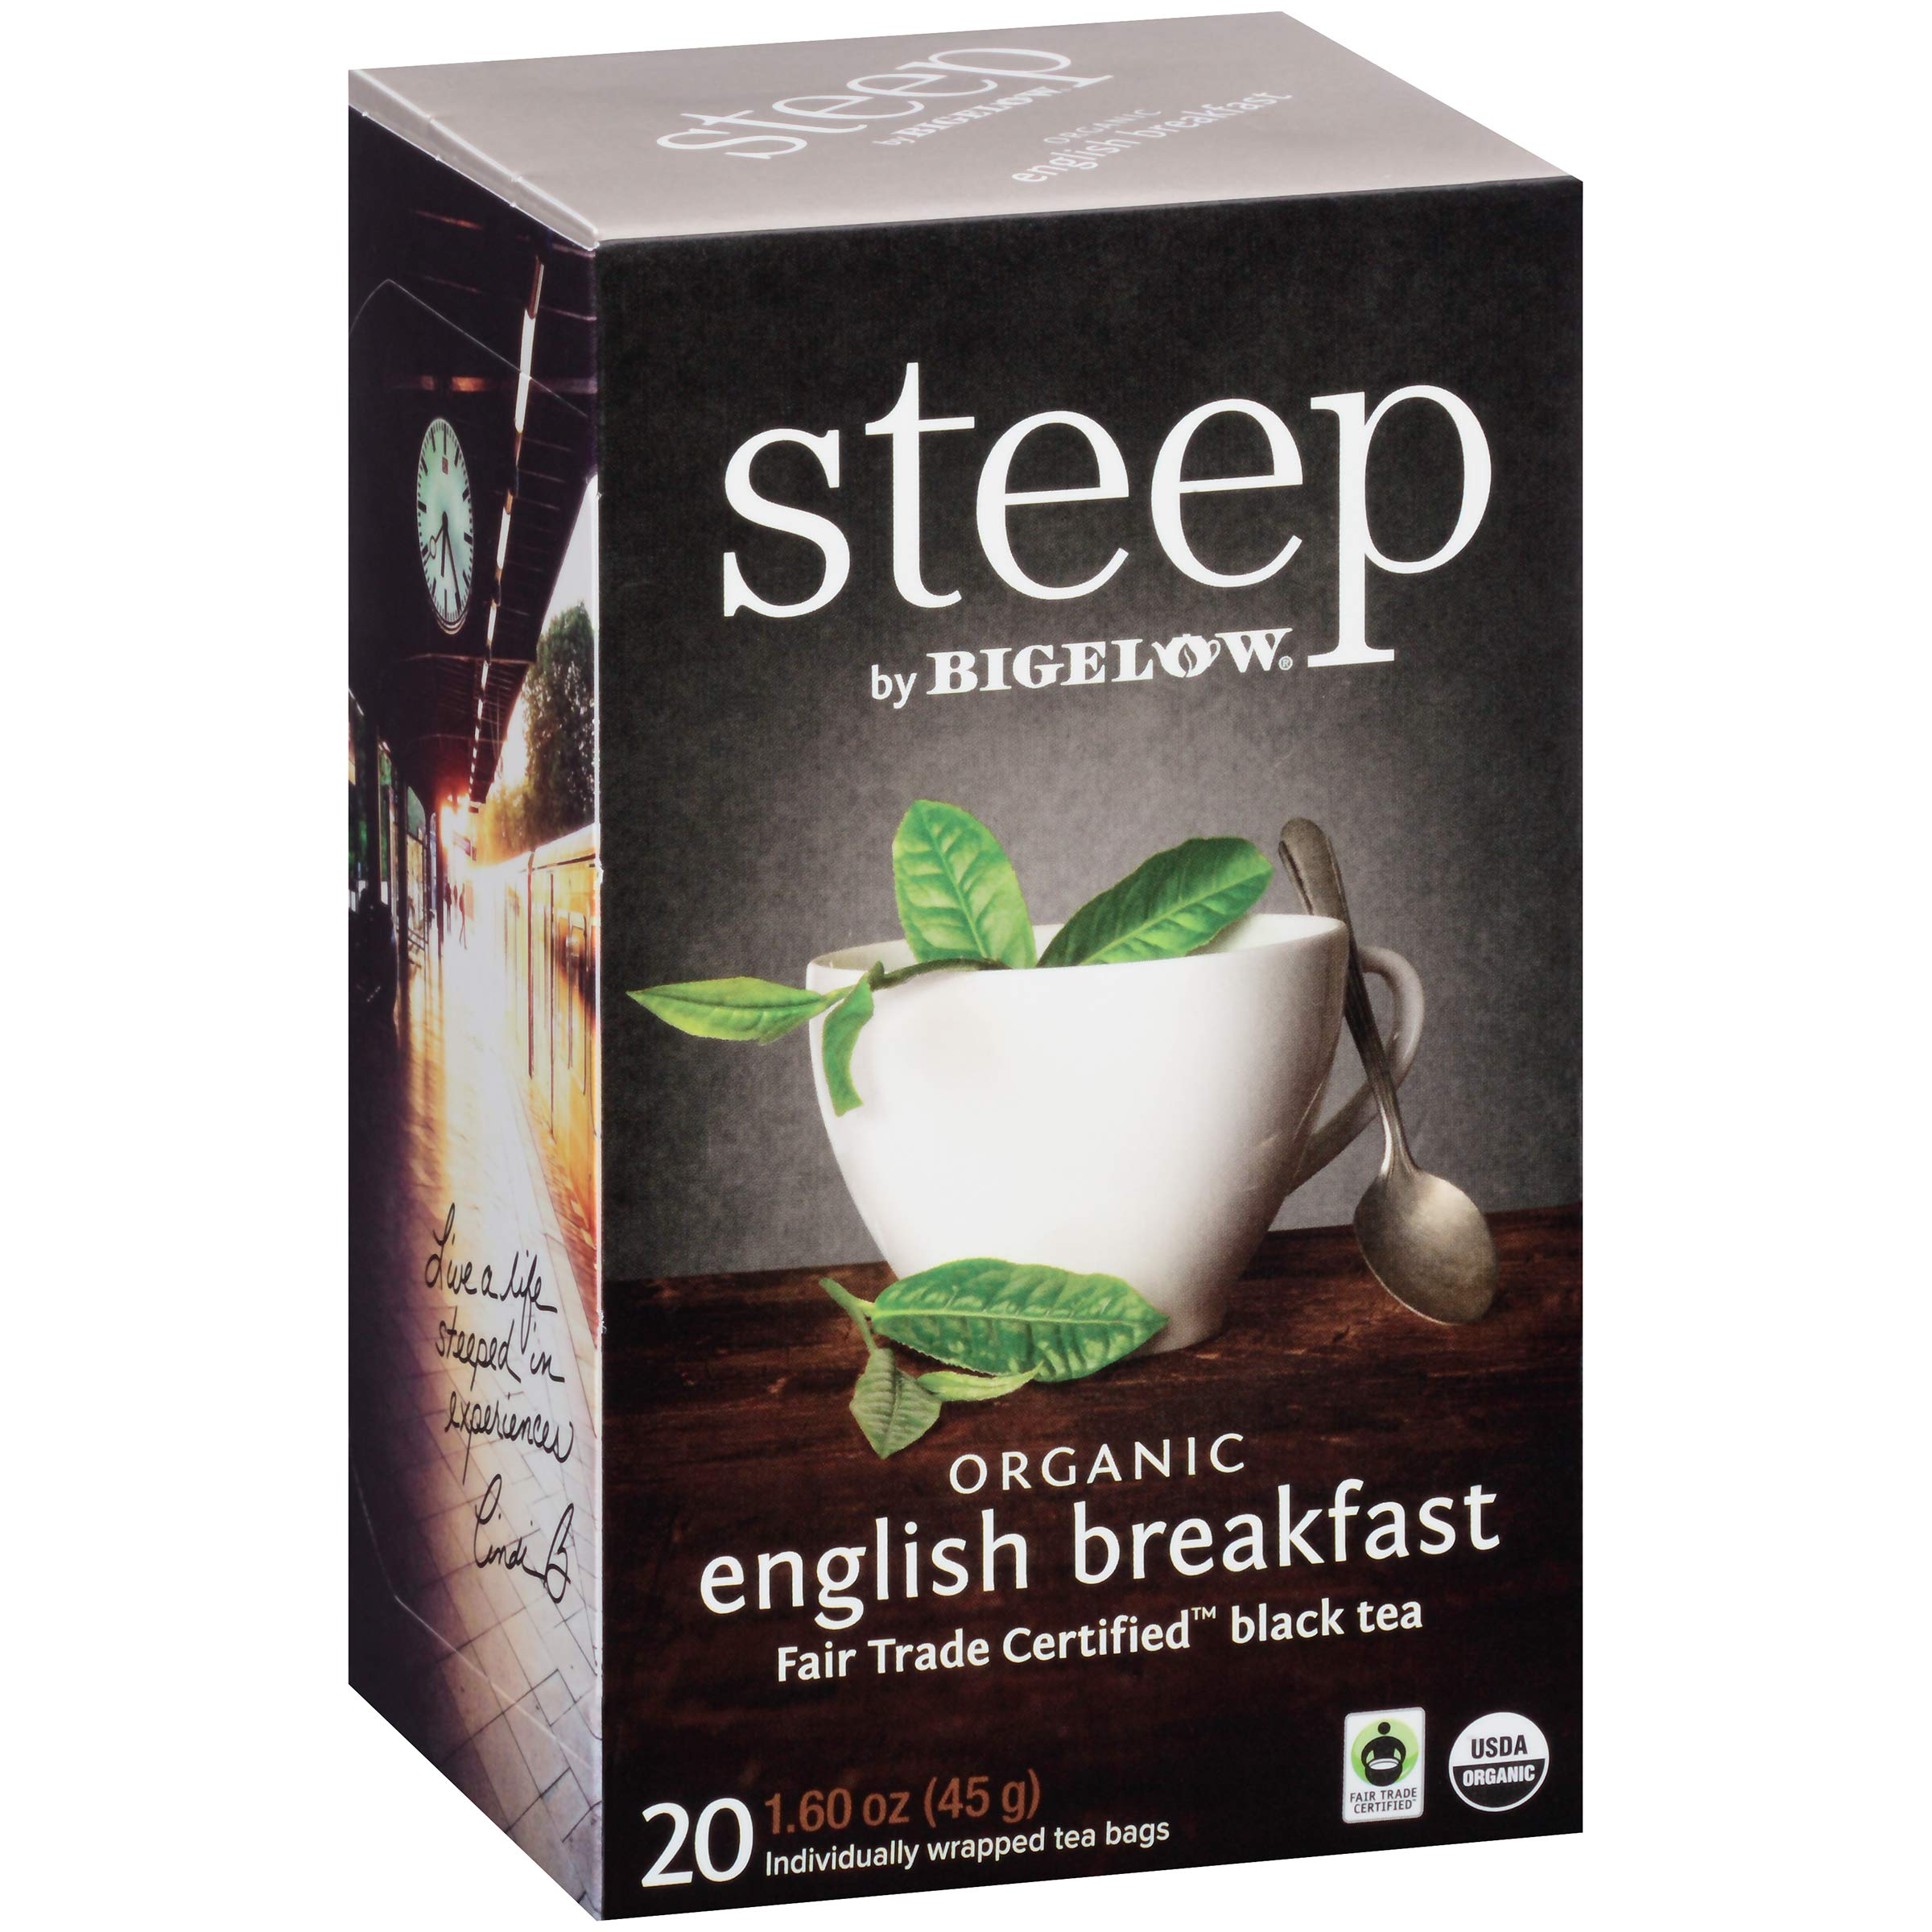 Steep by Bigelow Organic English Breakfast Tea 20 Count 1.6 oz (Pack of 6) Organic Caffeinated Individual Black Tea Bags, for Hot Tea or Iced Tea, Drink Plain or Sweetened with Honey or Sugar